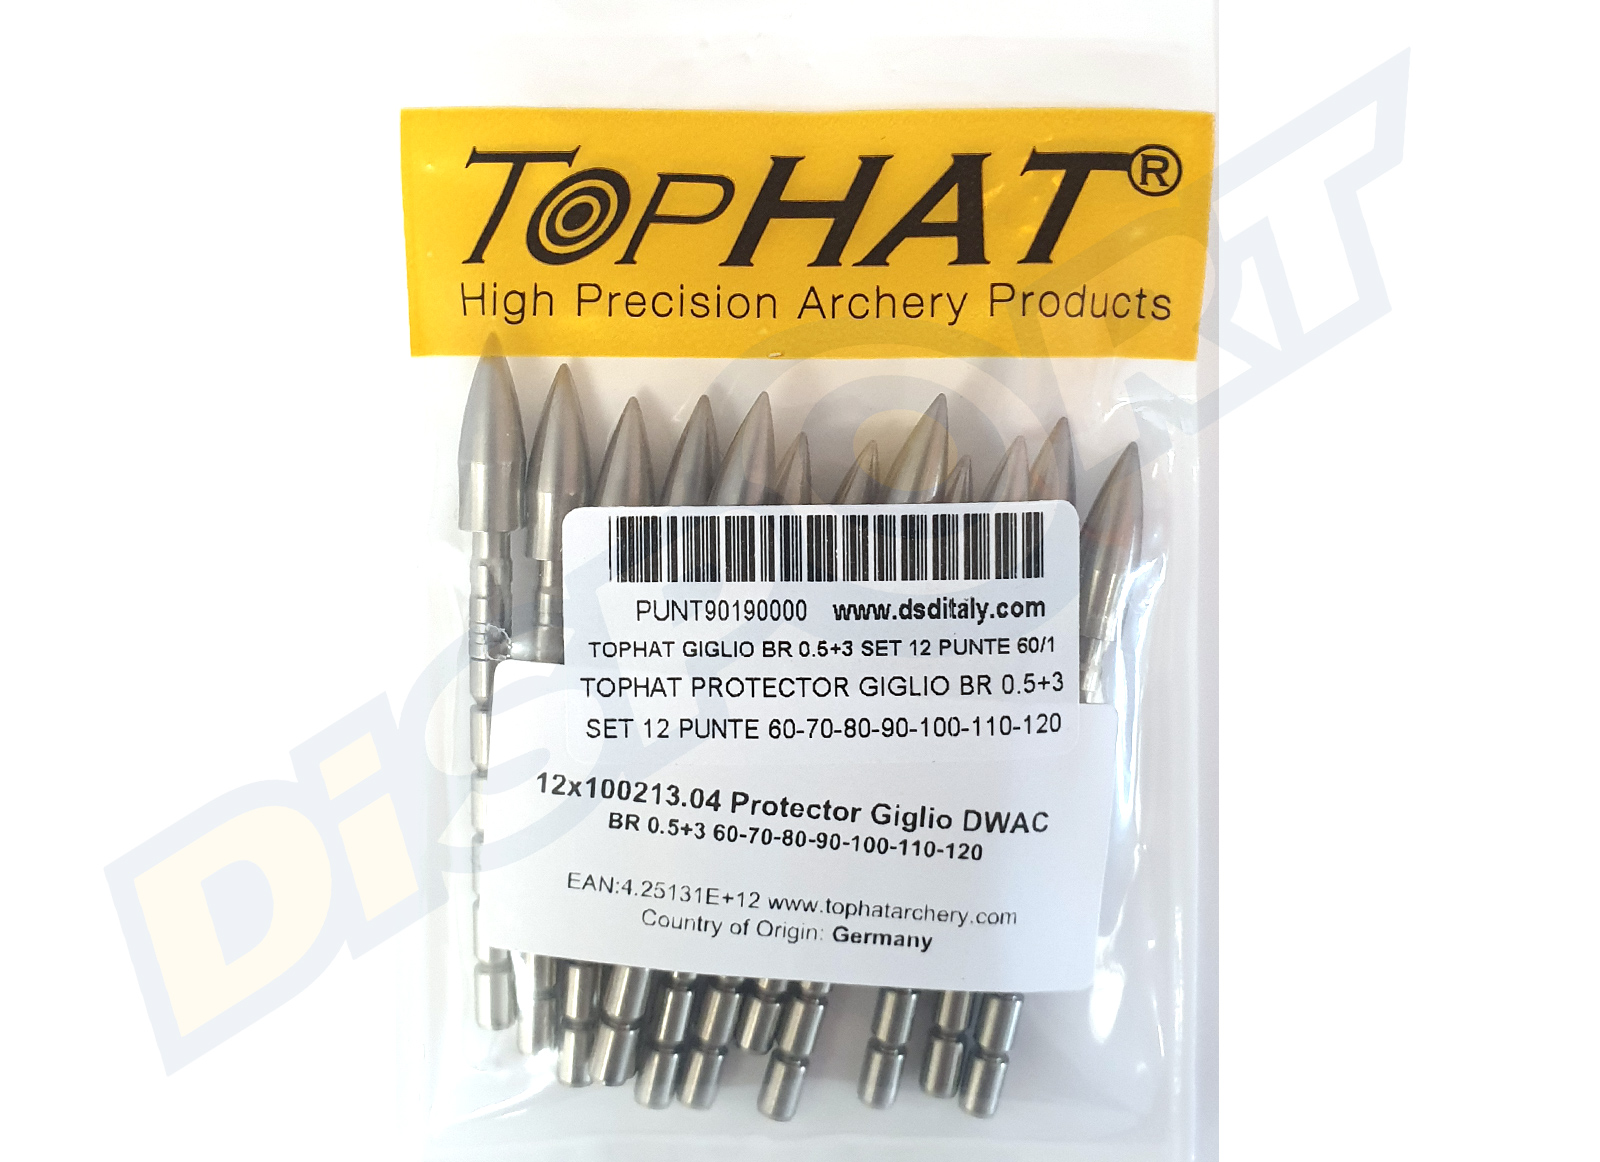 TOPHAT PROTECTOR GIGLIO DWAC BR 0.5+3 SET 12 PUNTE 60-70-80-90-100-110-120 (100213.04)